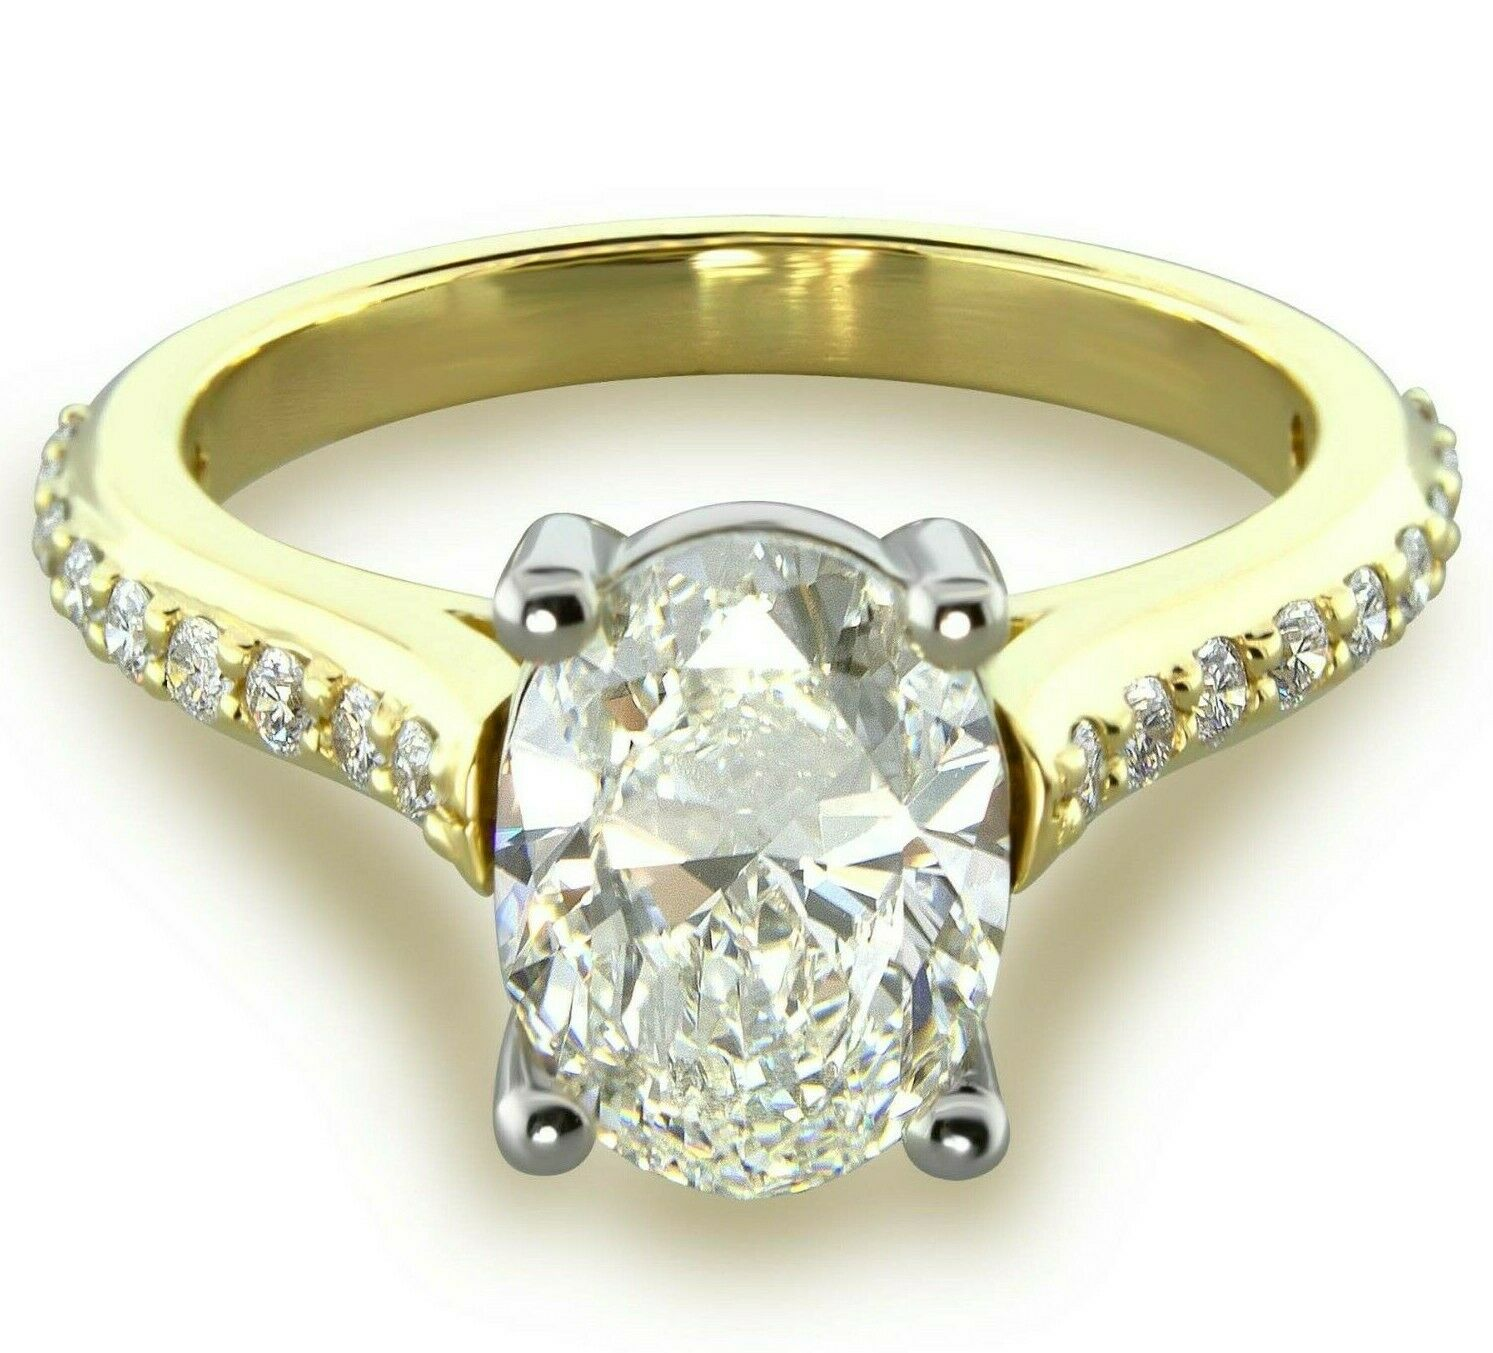 1.45 Carats I-SI1 GIA cert. Oval Diamond Engagement Ring 14k Yellow & White Gold